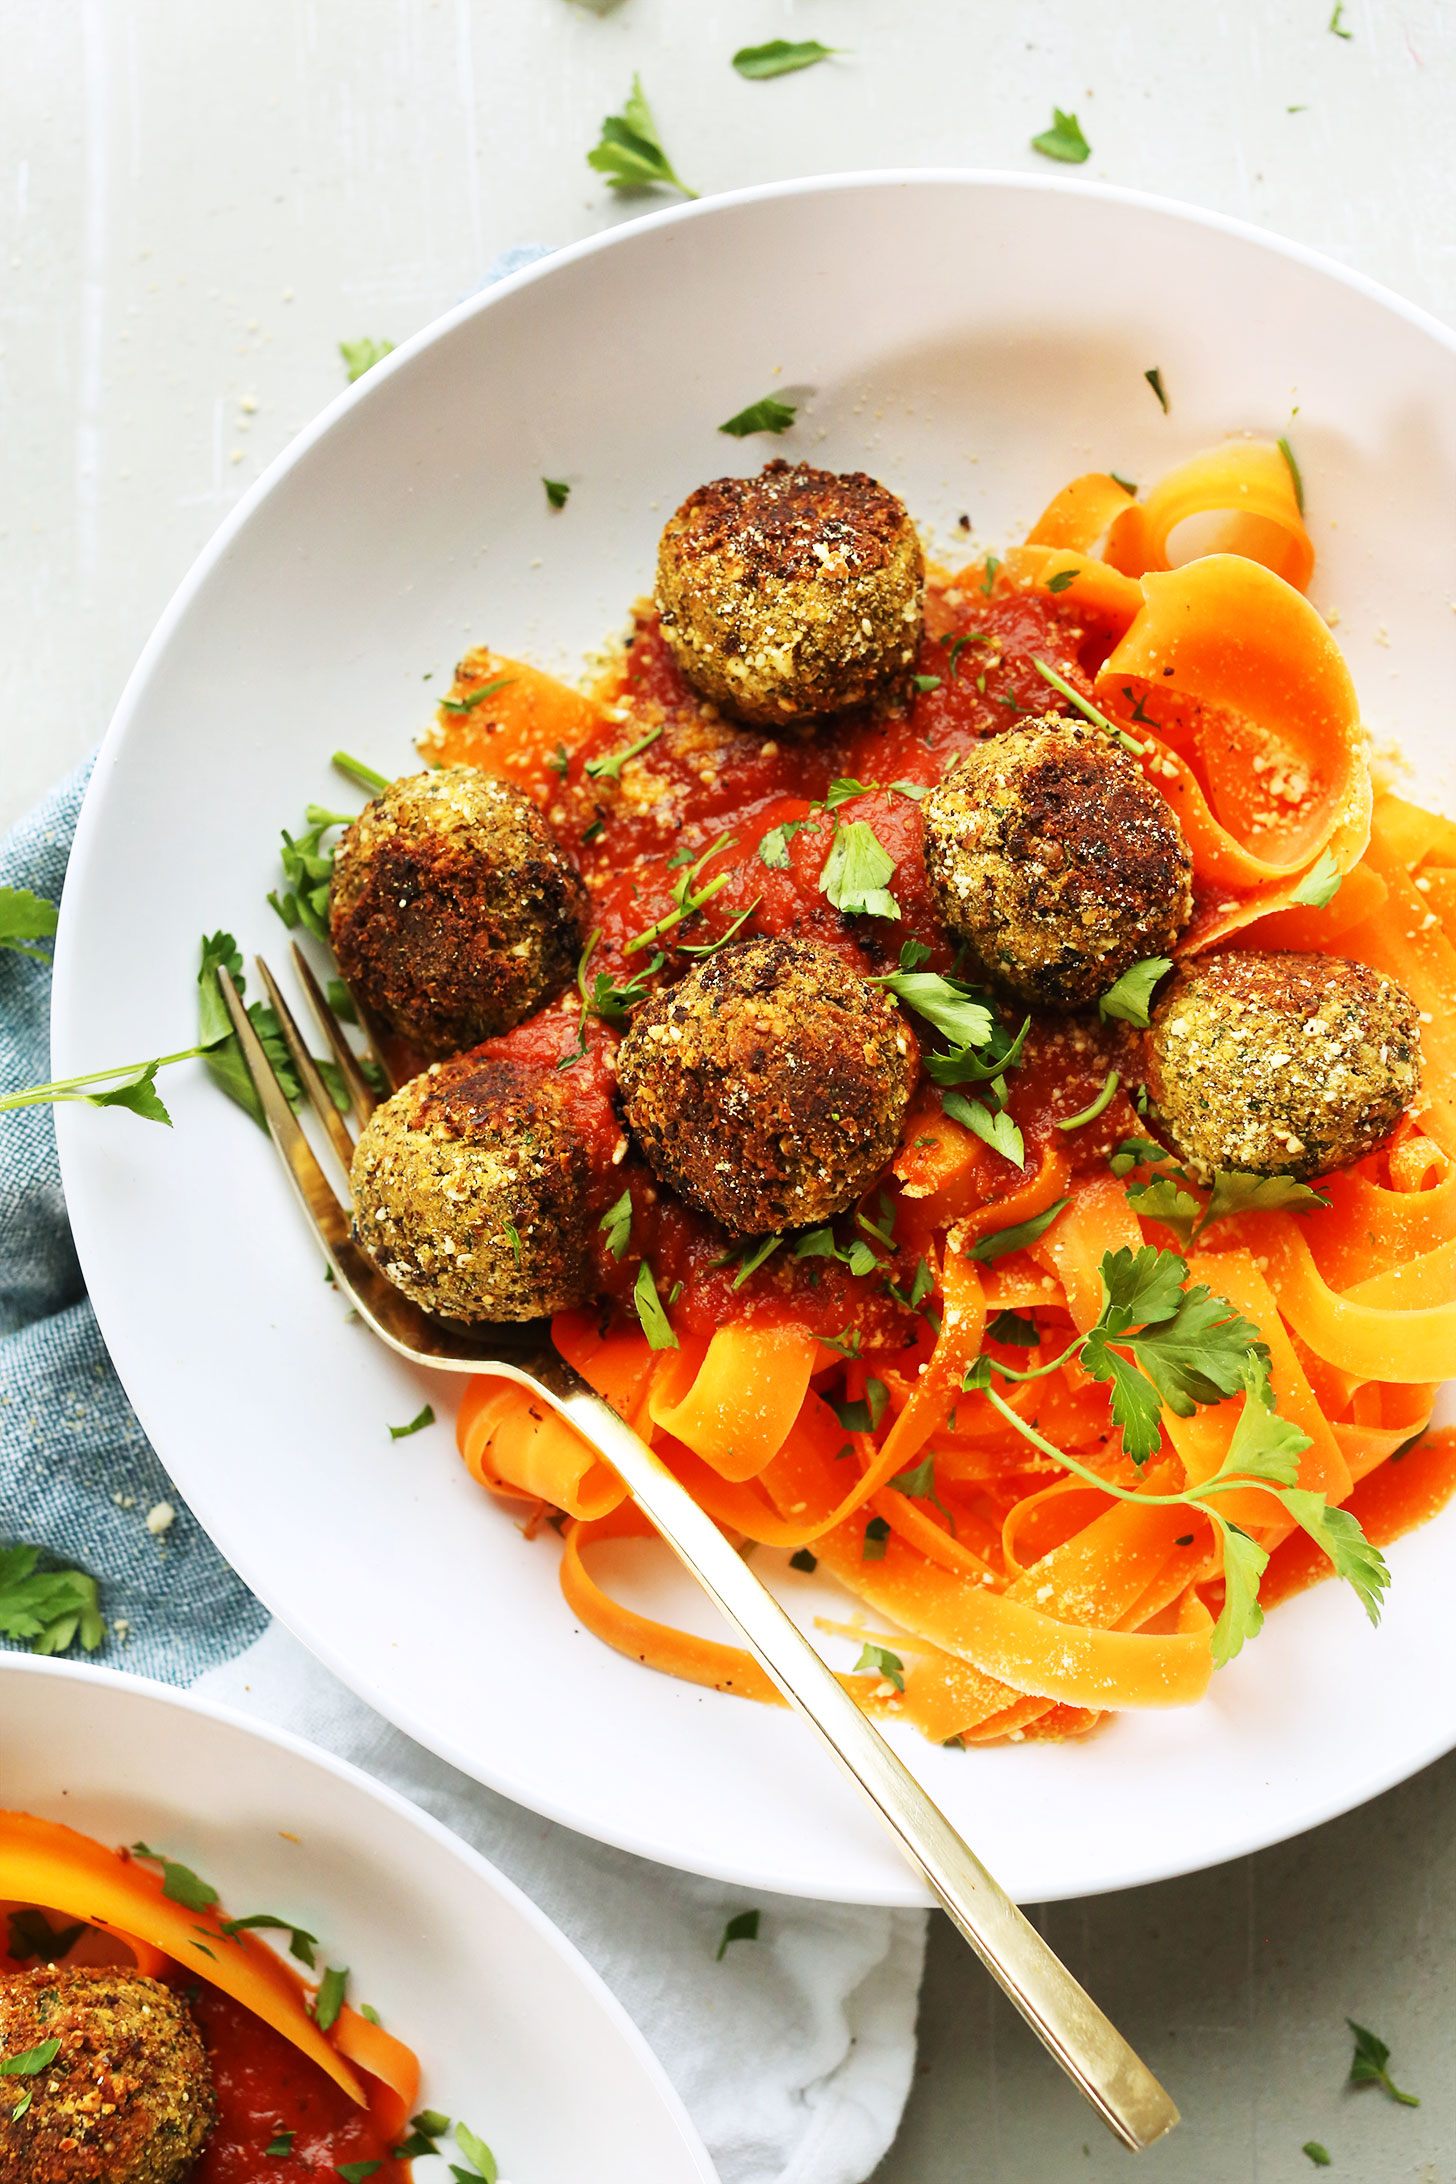 Lentil meatballs over carrot ribbons for an easy vegan dinner